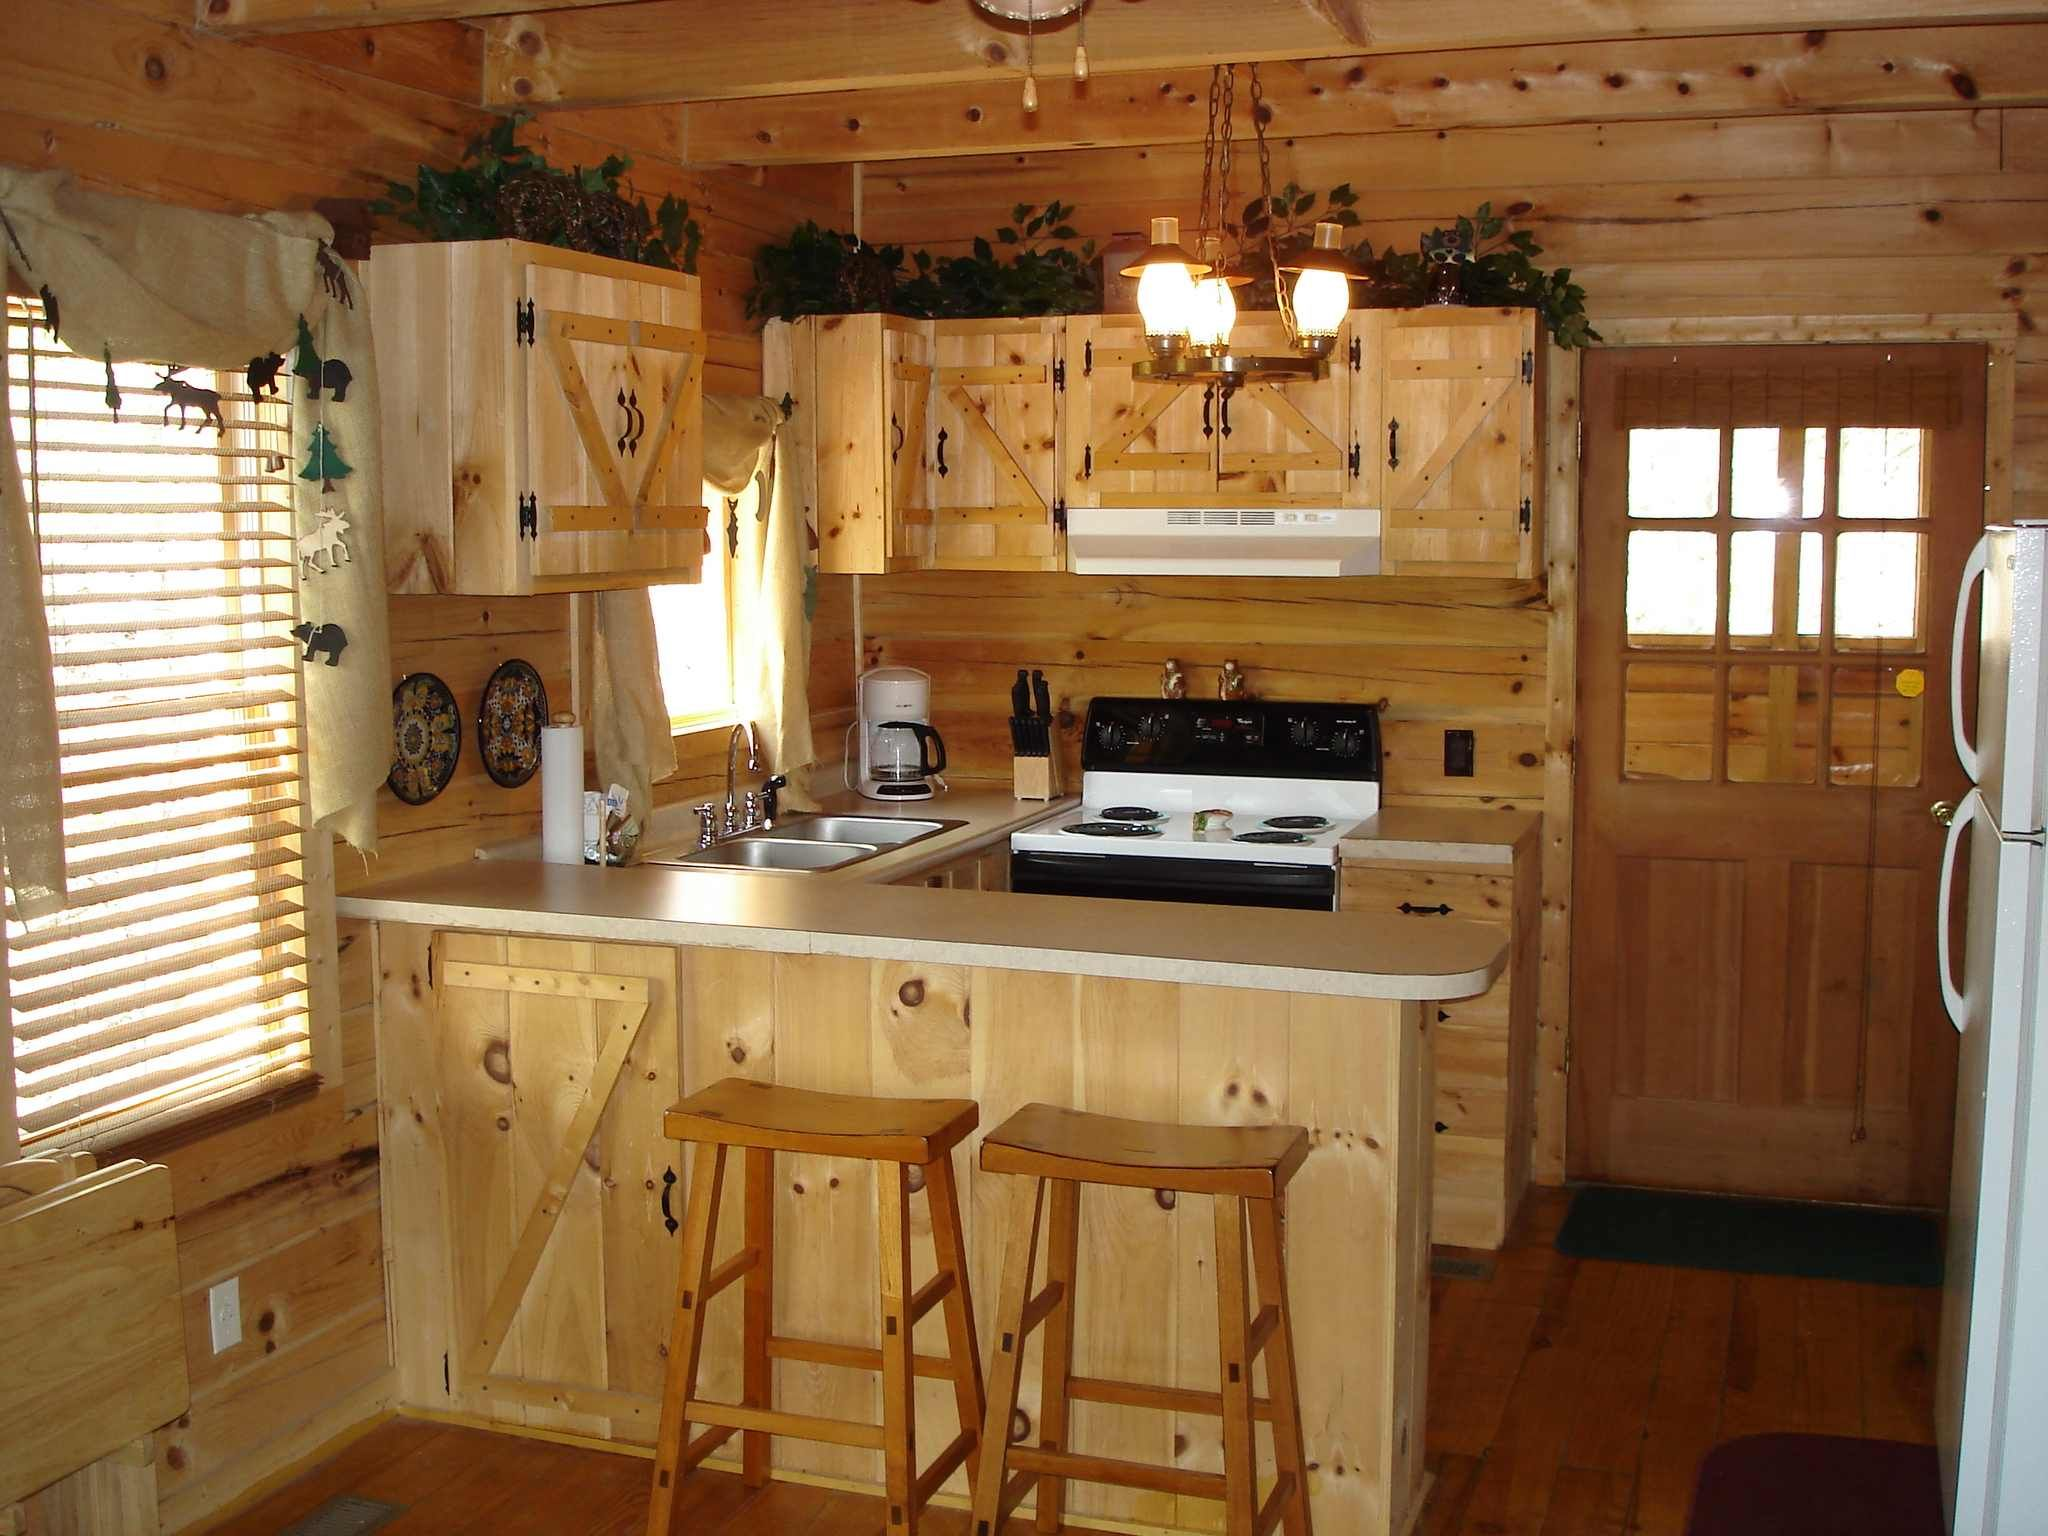 Wonderful Rustic Cottage Kitchen Ideas Part - 3: Cabin Kitchens | ... Valley Cabins For Rent - Smoky Mountain Cabin Rentals  In. Rustic Kitchen CabinetsRustic Kitchen DesignSmall ...